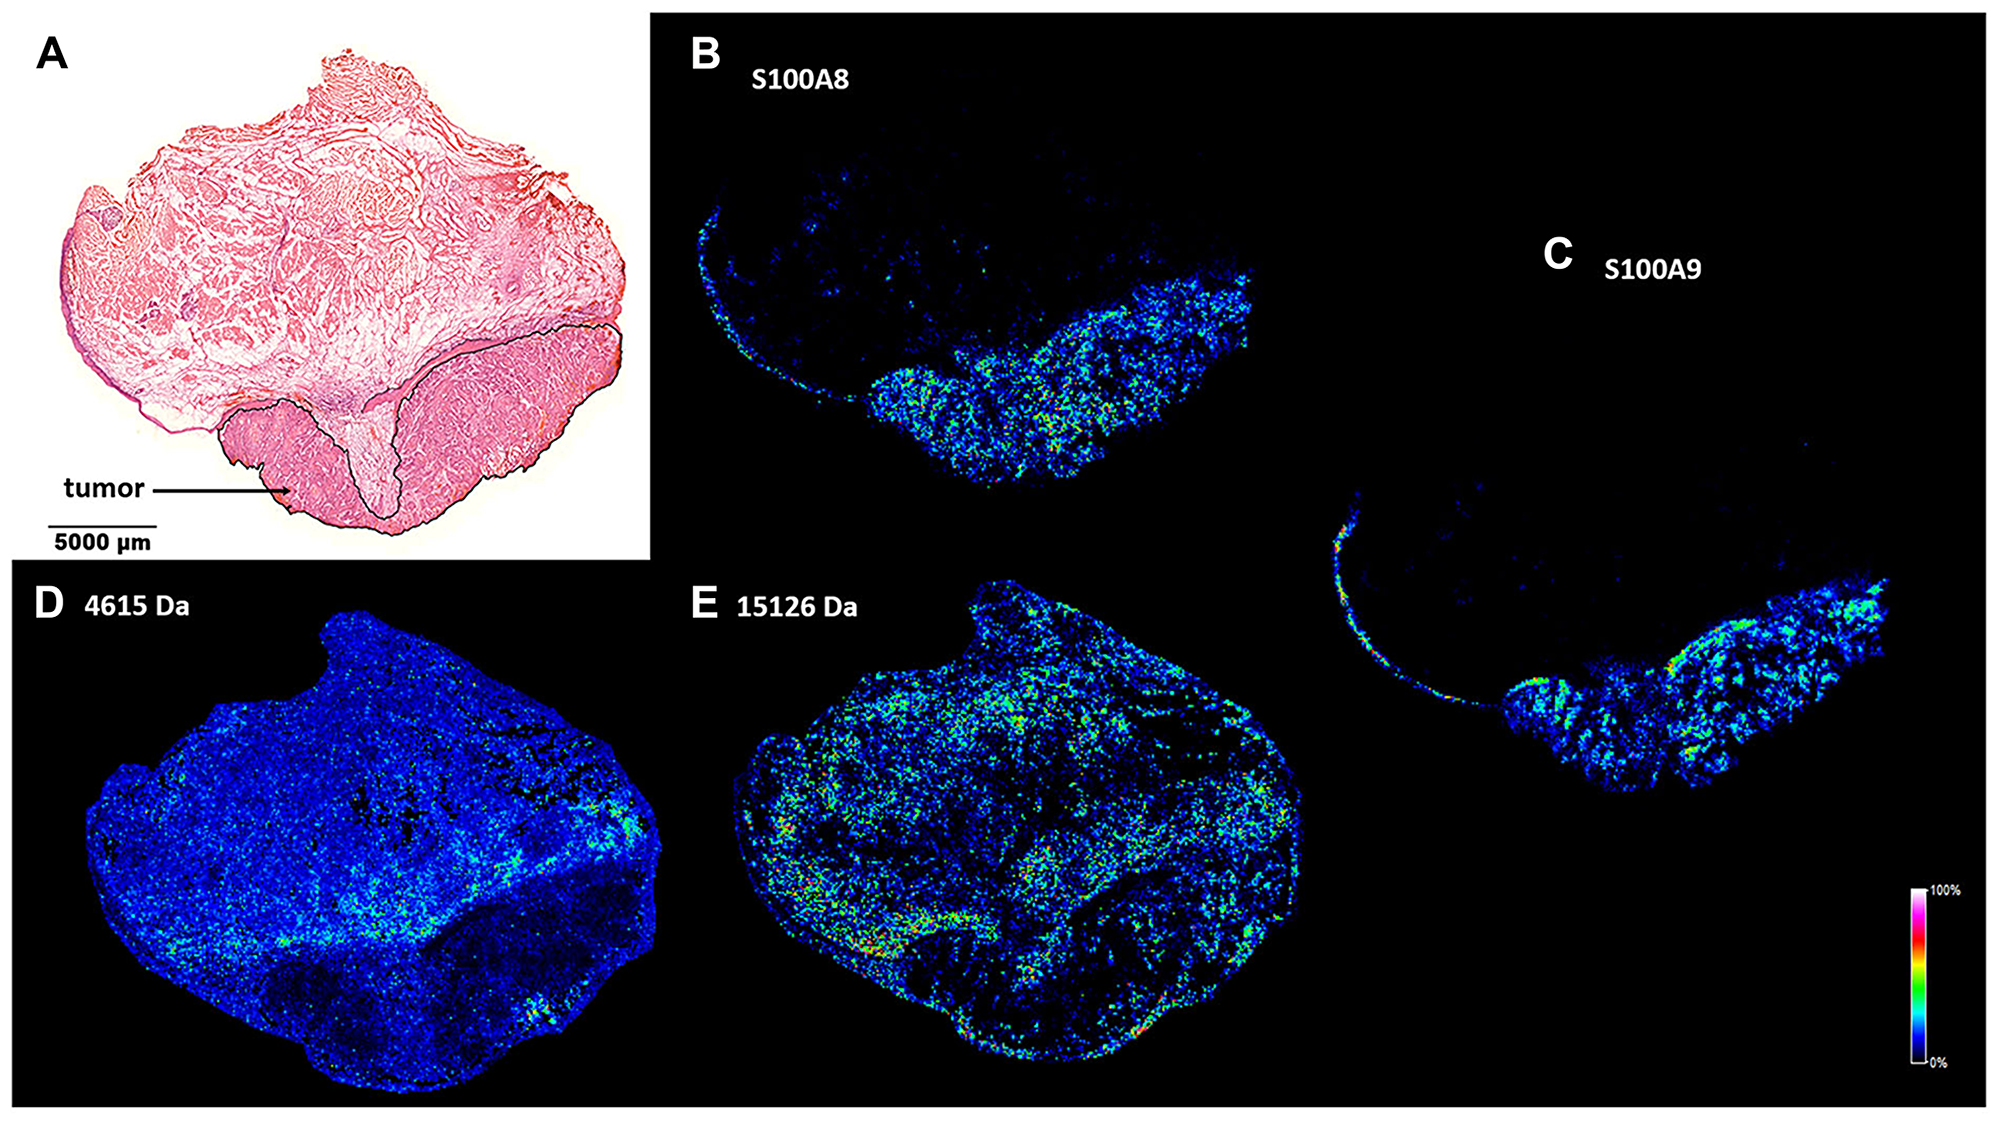 Spatial distribution of tumor marker candidate proteins in a HNSCC clinical specimen.